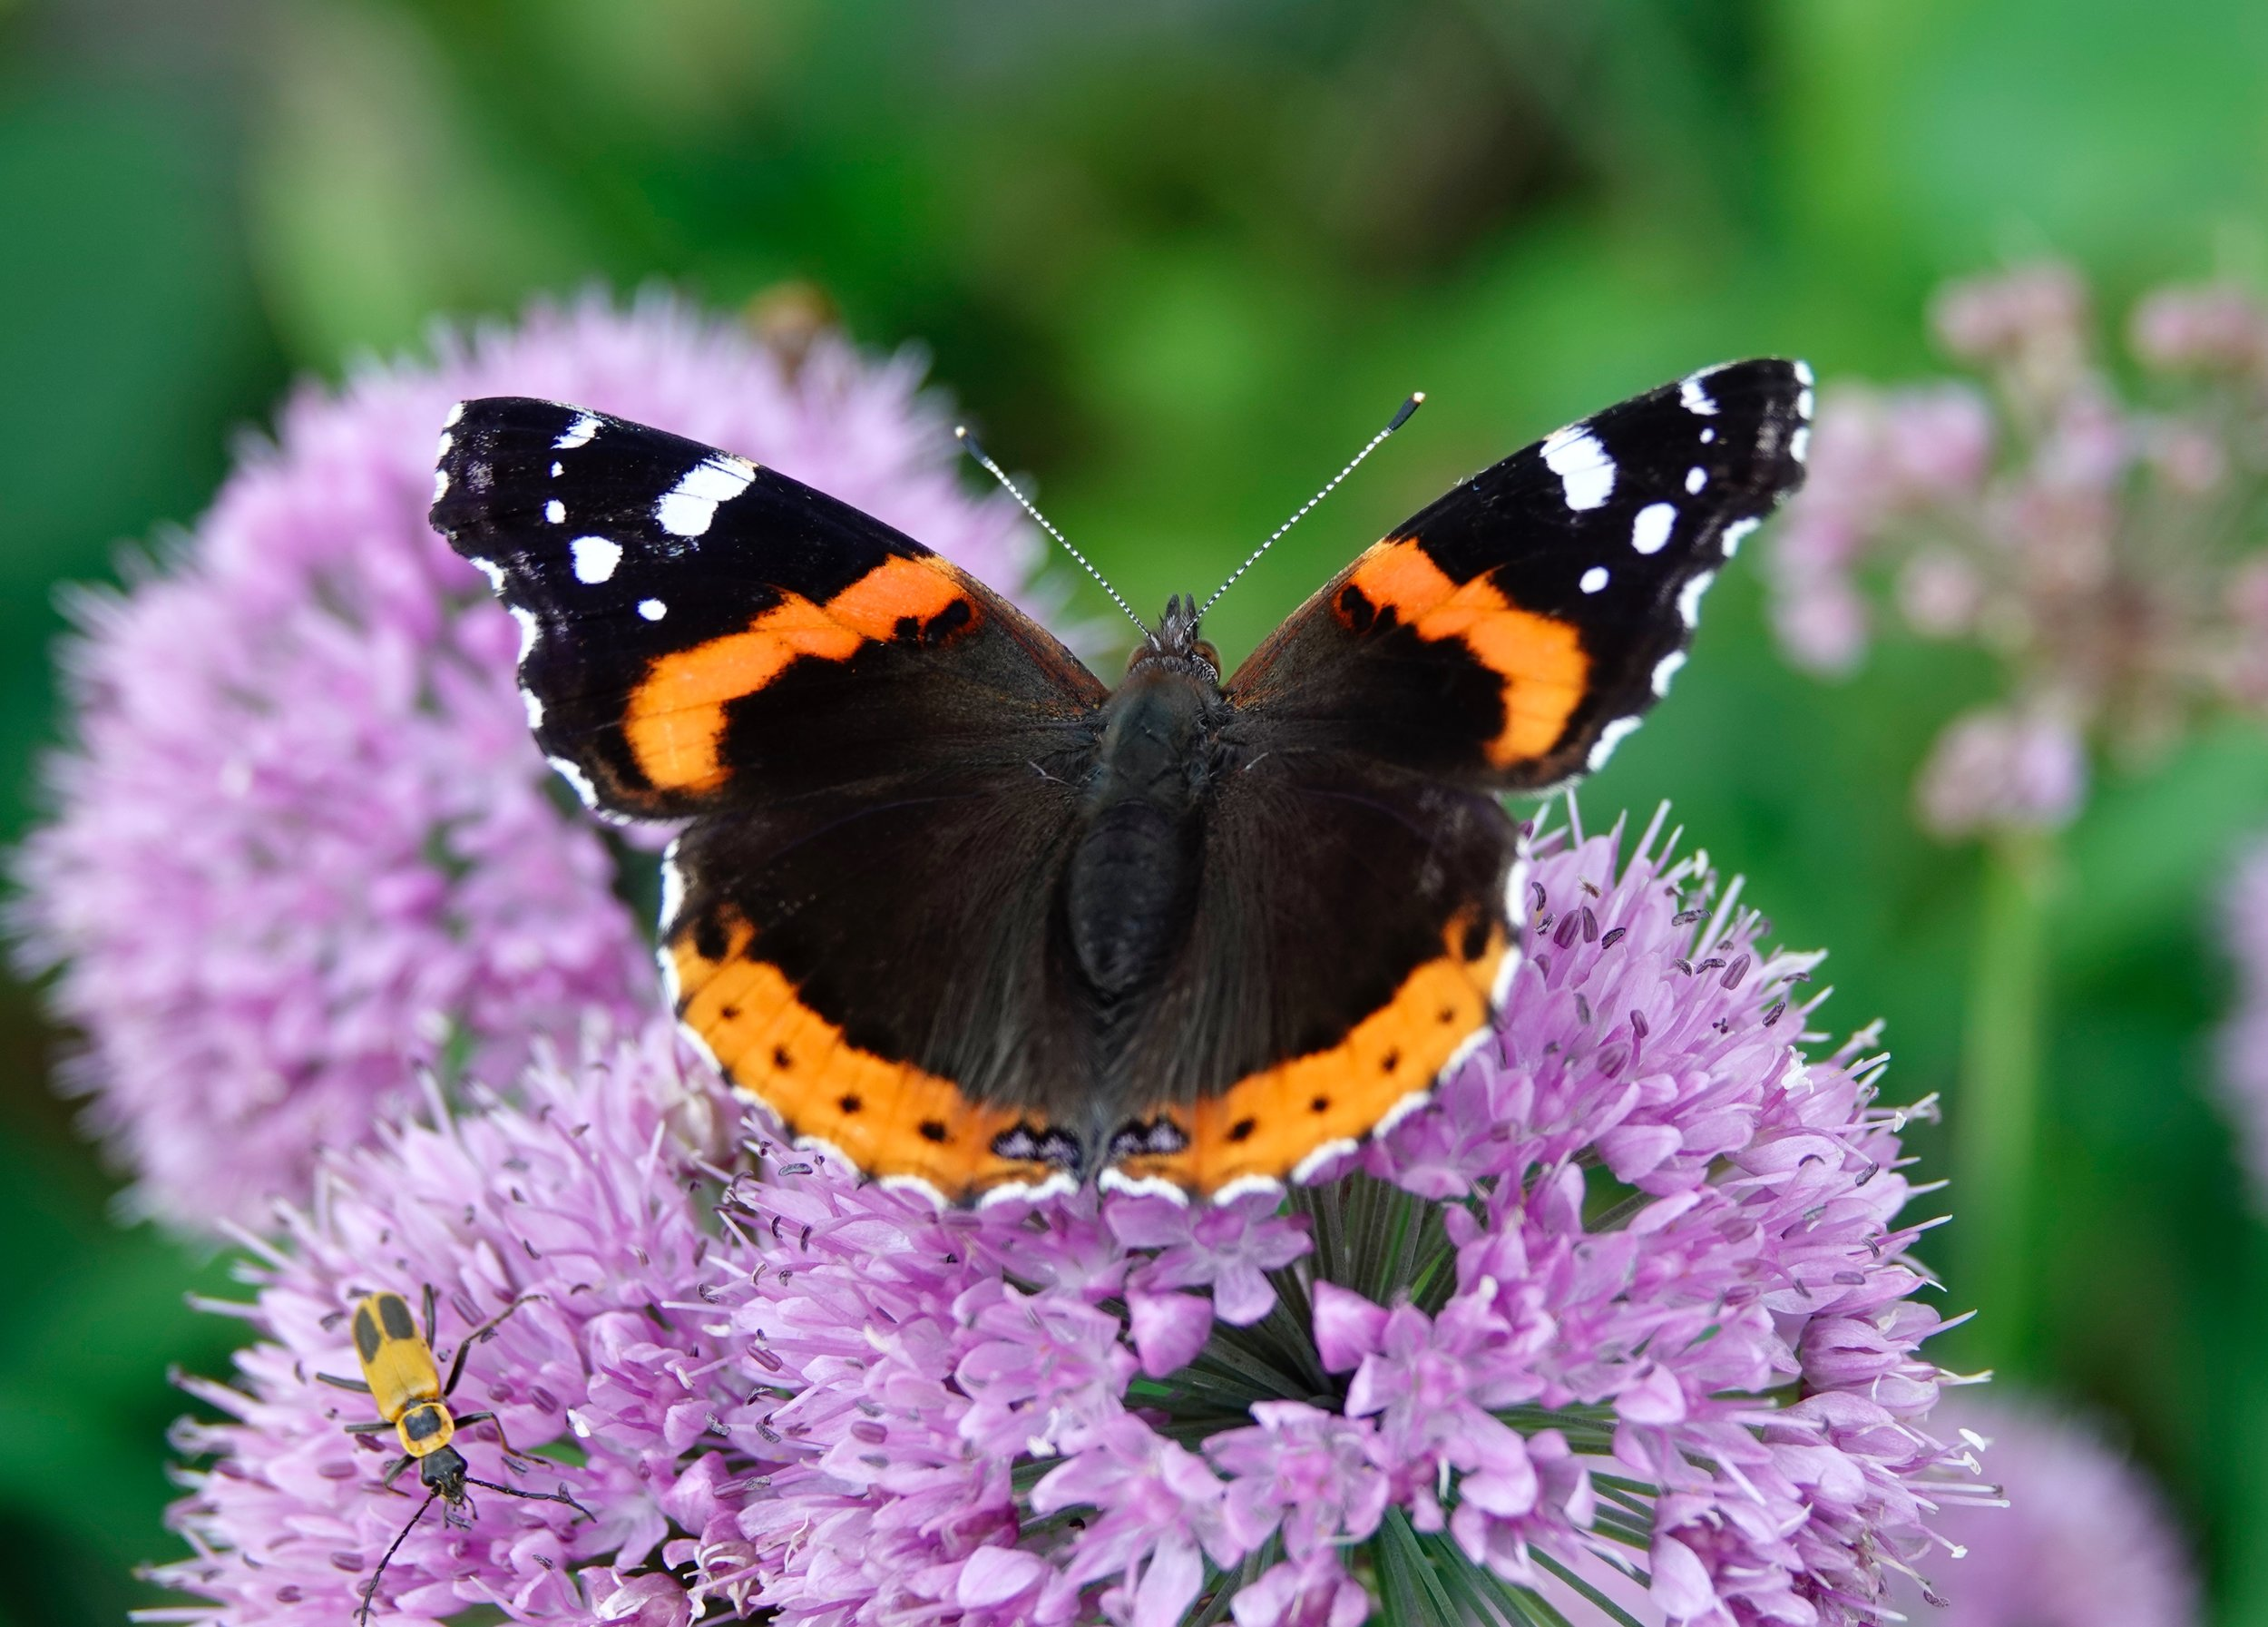 And in today's views: Butterfly dreaming on such a winter's day. Here is a red admiral from last summer.